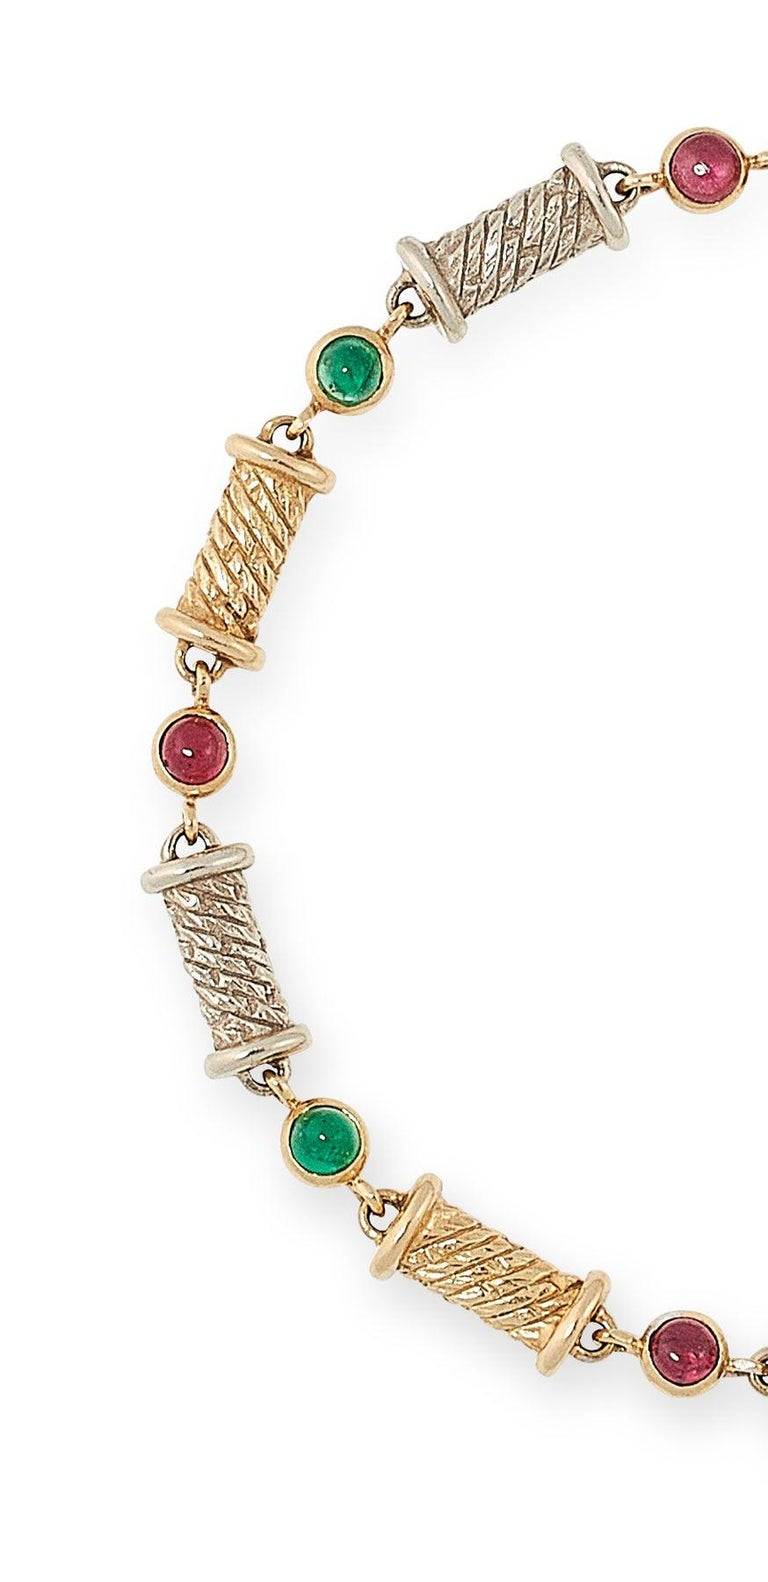 Van Cleef & Arpels Ruby and Emerald Bracelet In Good Condition For Sale In  London, GB